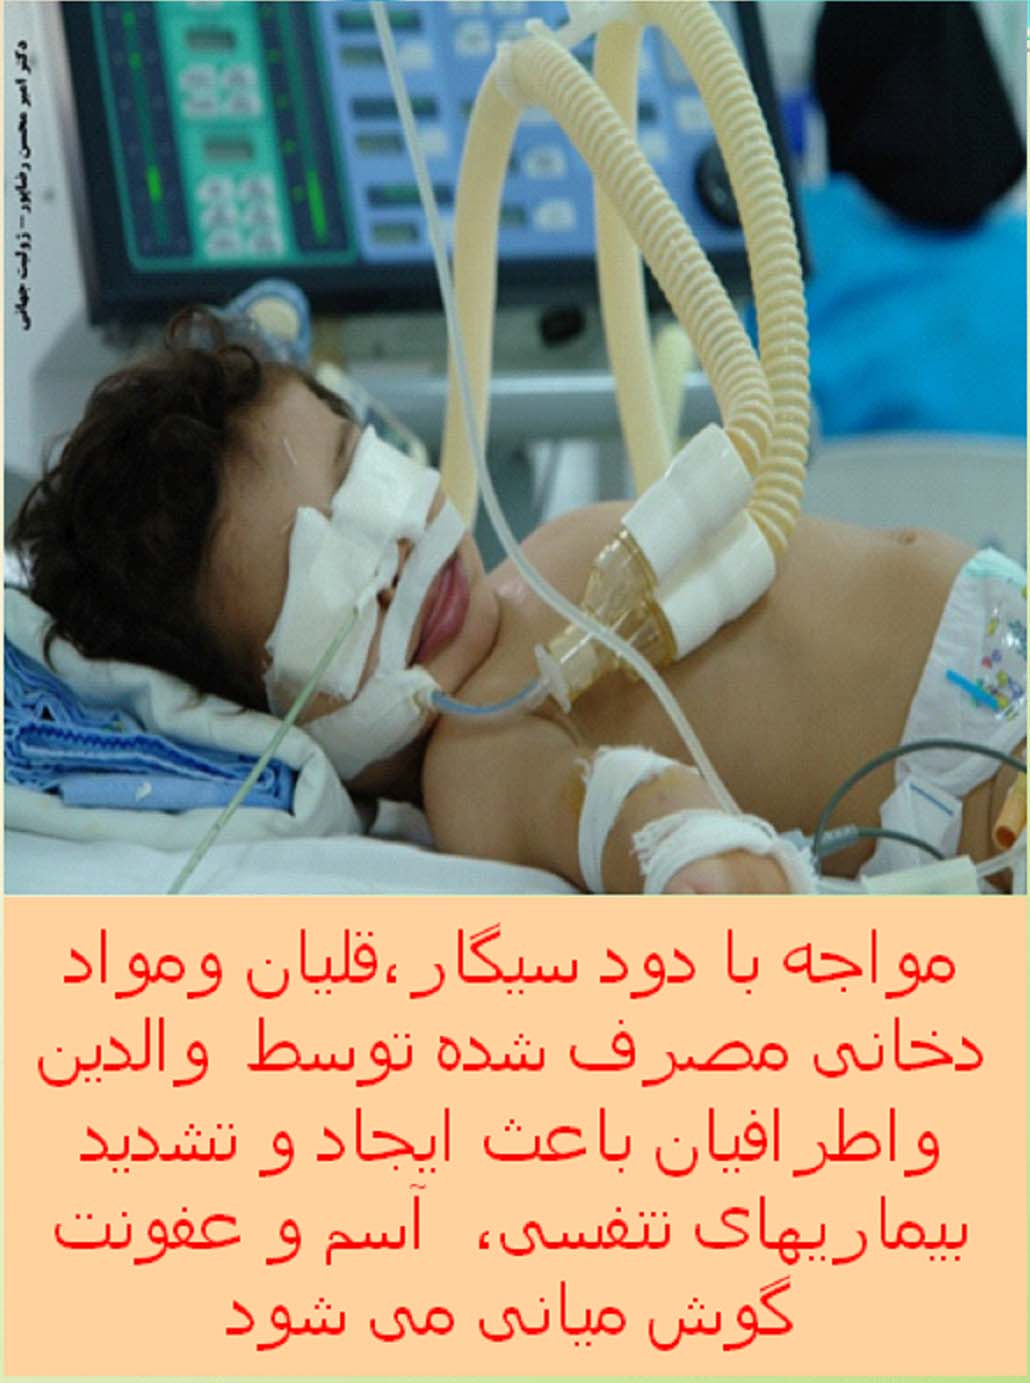 Iran 2009 ETS Baby - child wearing respirator, lived experience